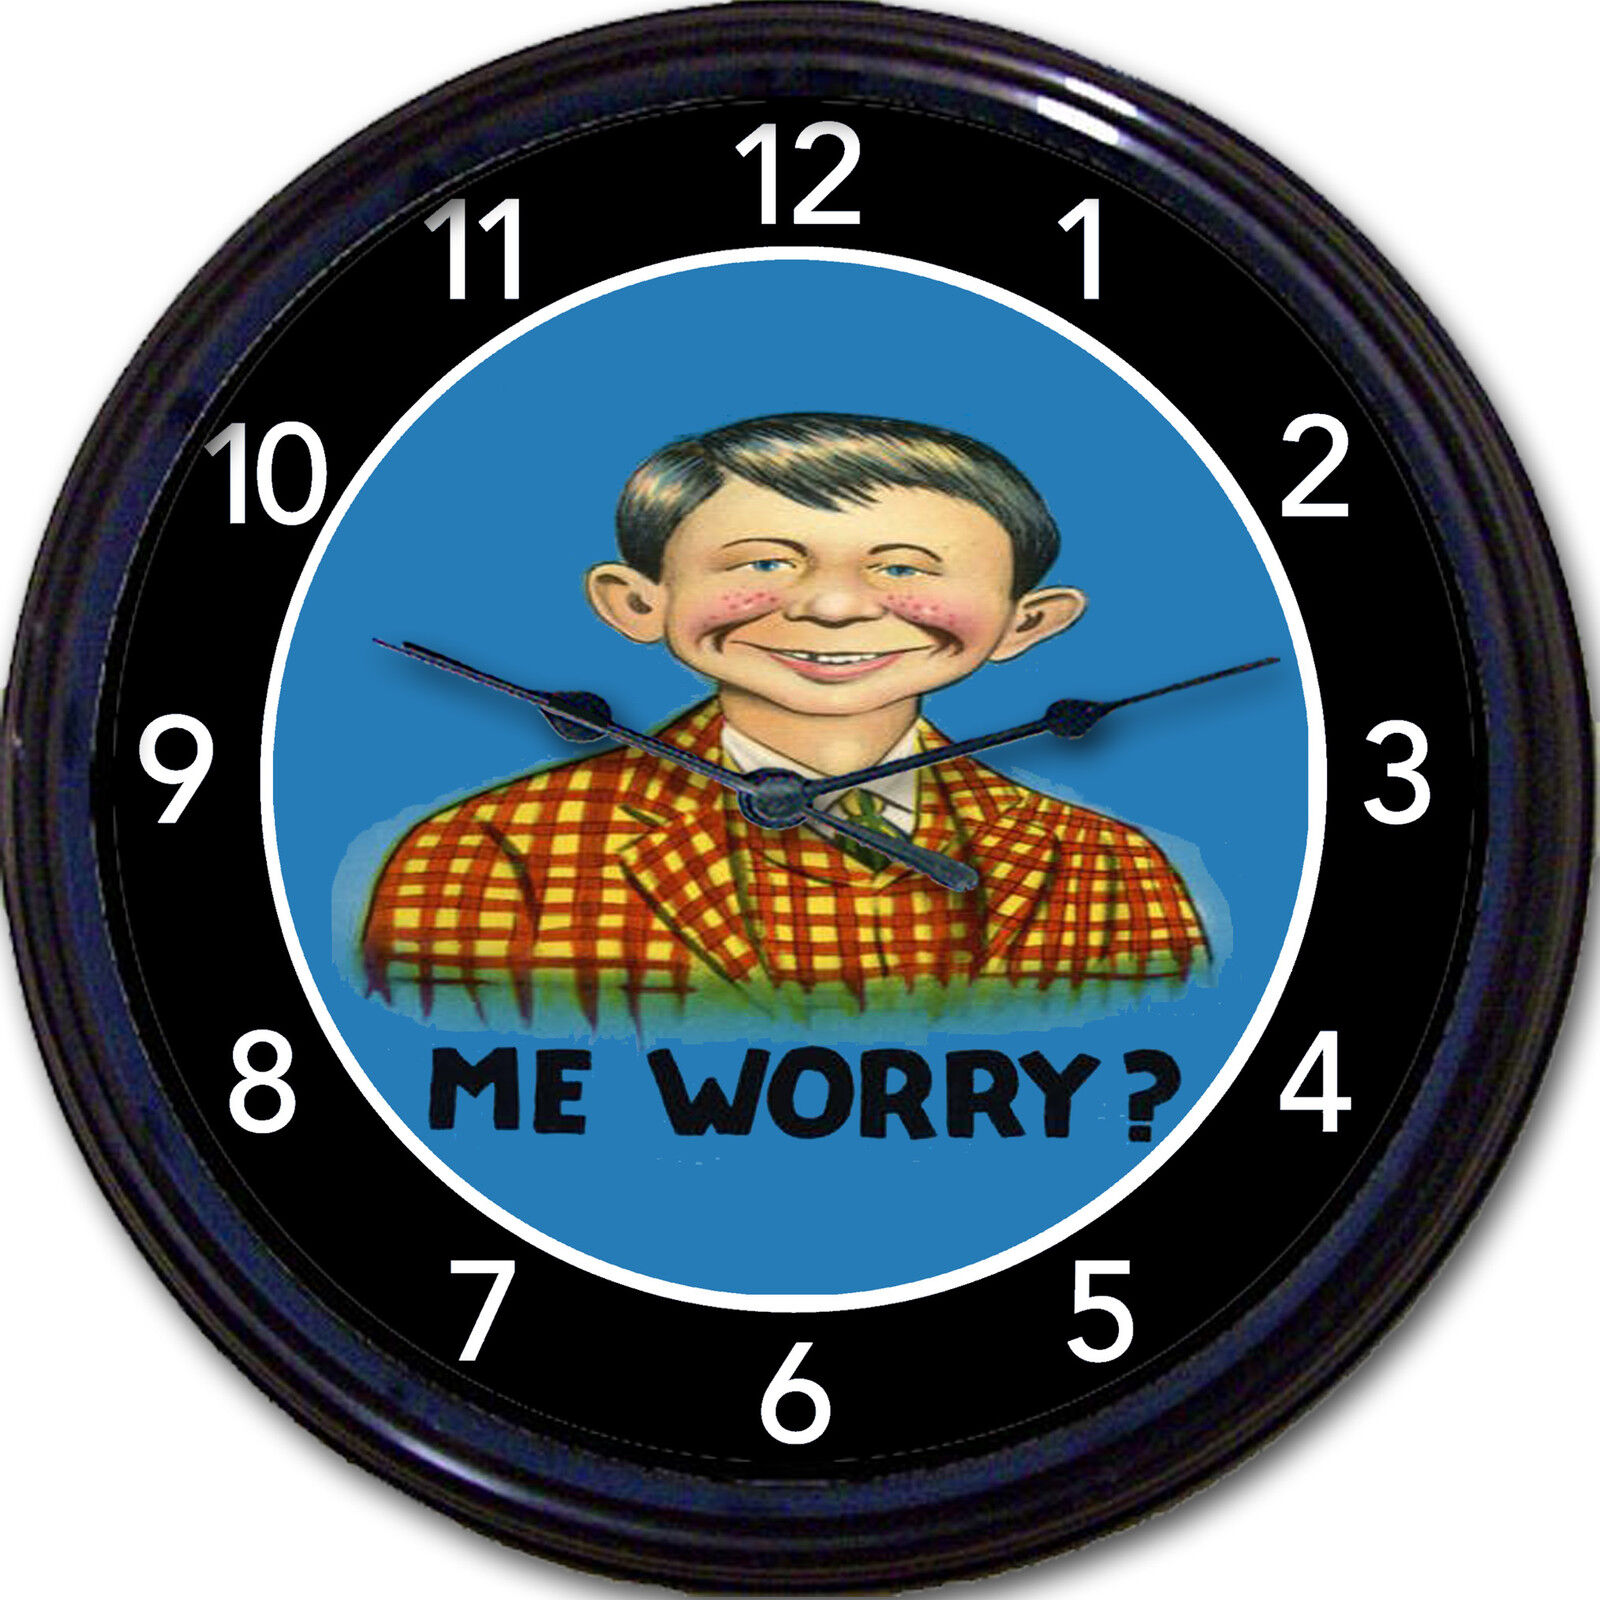 Alfred E Neuman Mad Magazine What Me Worry? Mascot Wall Clock 10